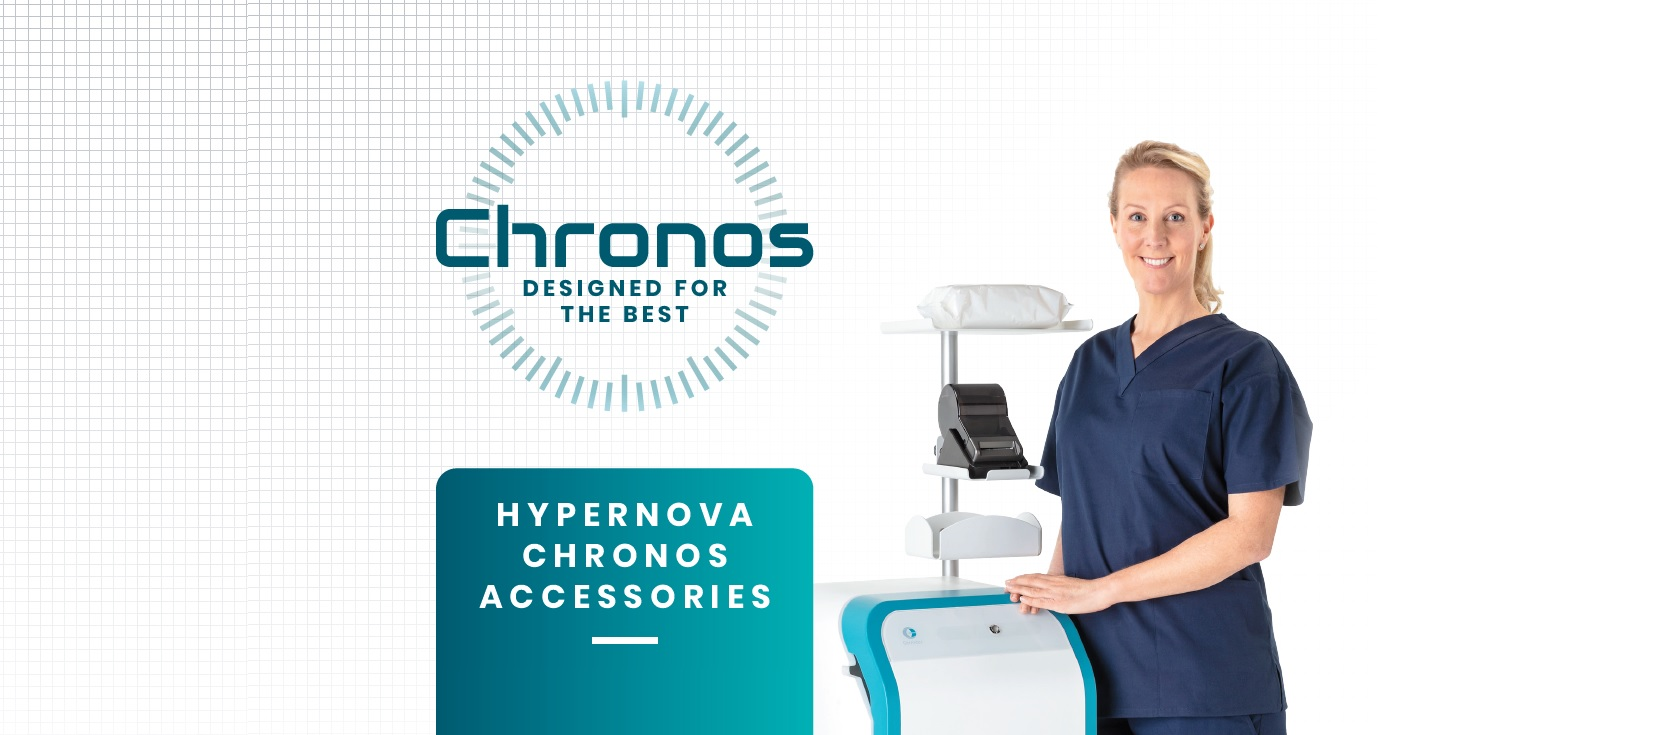 Hypernova Chronos Accessories